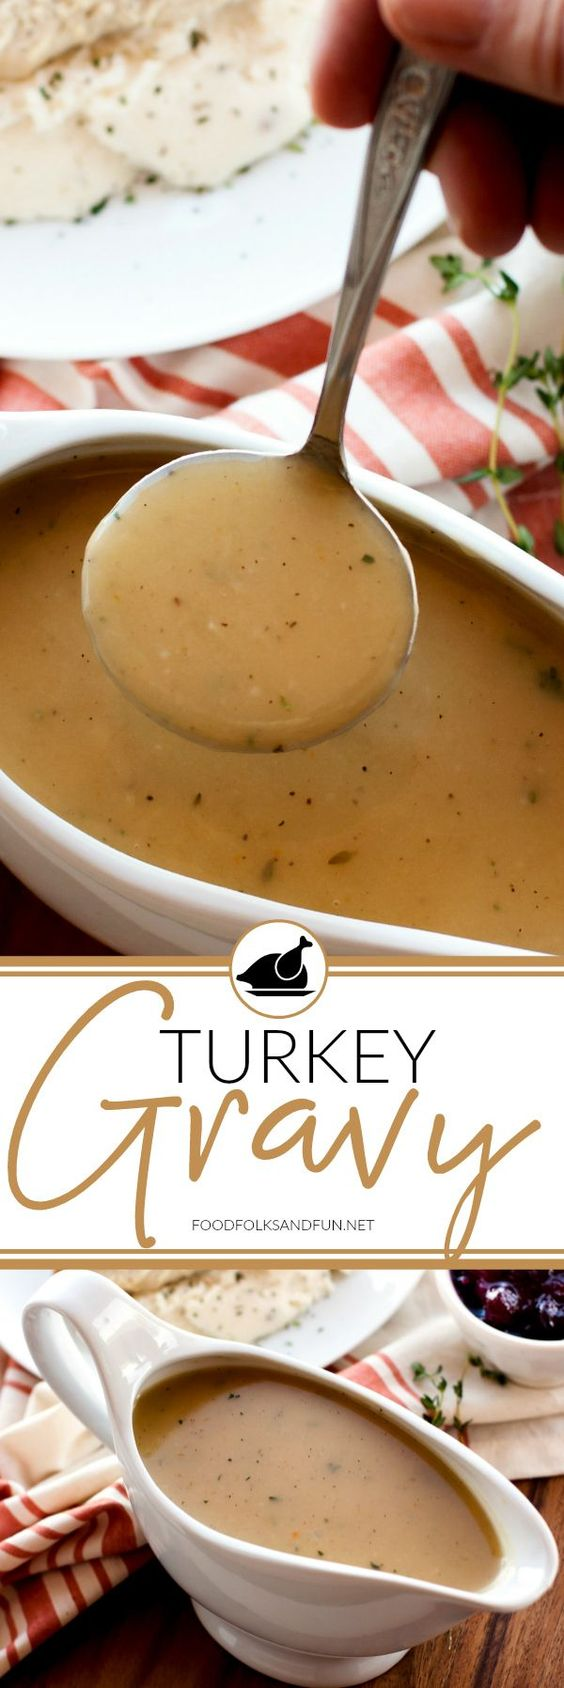 No Thanksgiving is complete without delicious, homemade Turkey Gravy. This recipe includes instructions to make turkey gravy with or without pan drippings. #Thanksgiving #ThanksgivingRecipe #ThanksgivingSide #Gravy